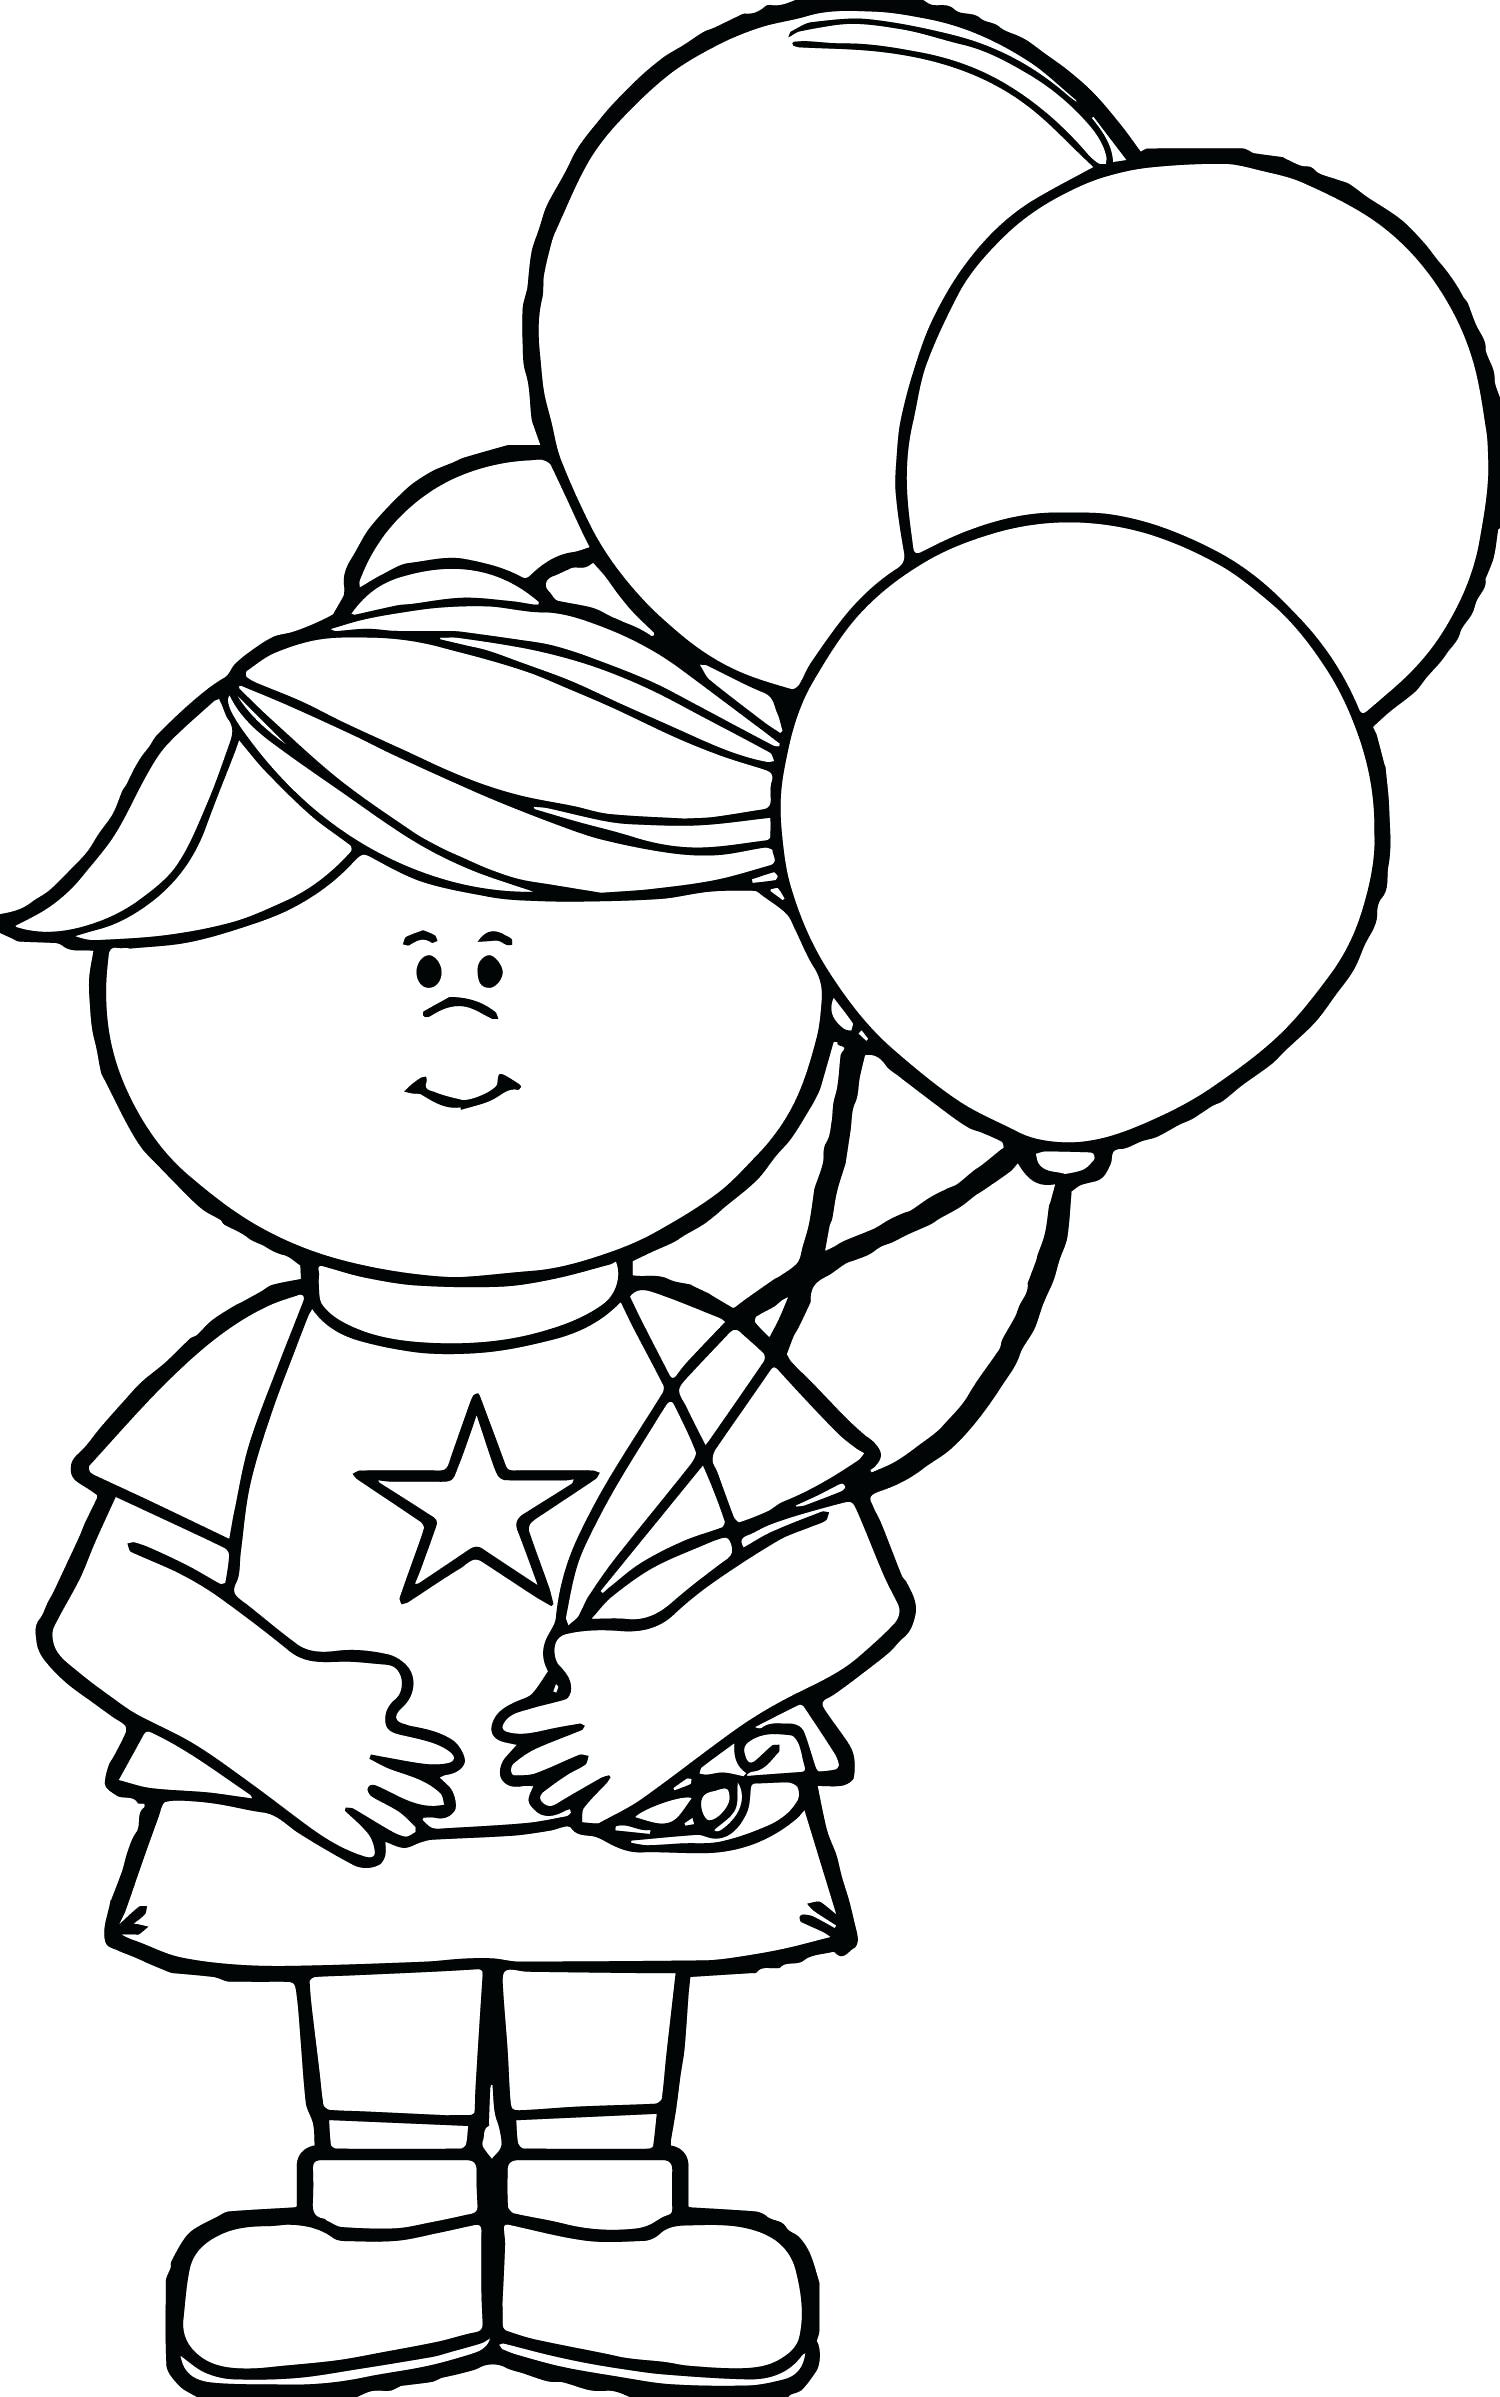 Coloring Page Of A Girl And Balloons - Worksheet & Coloring Pages